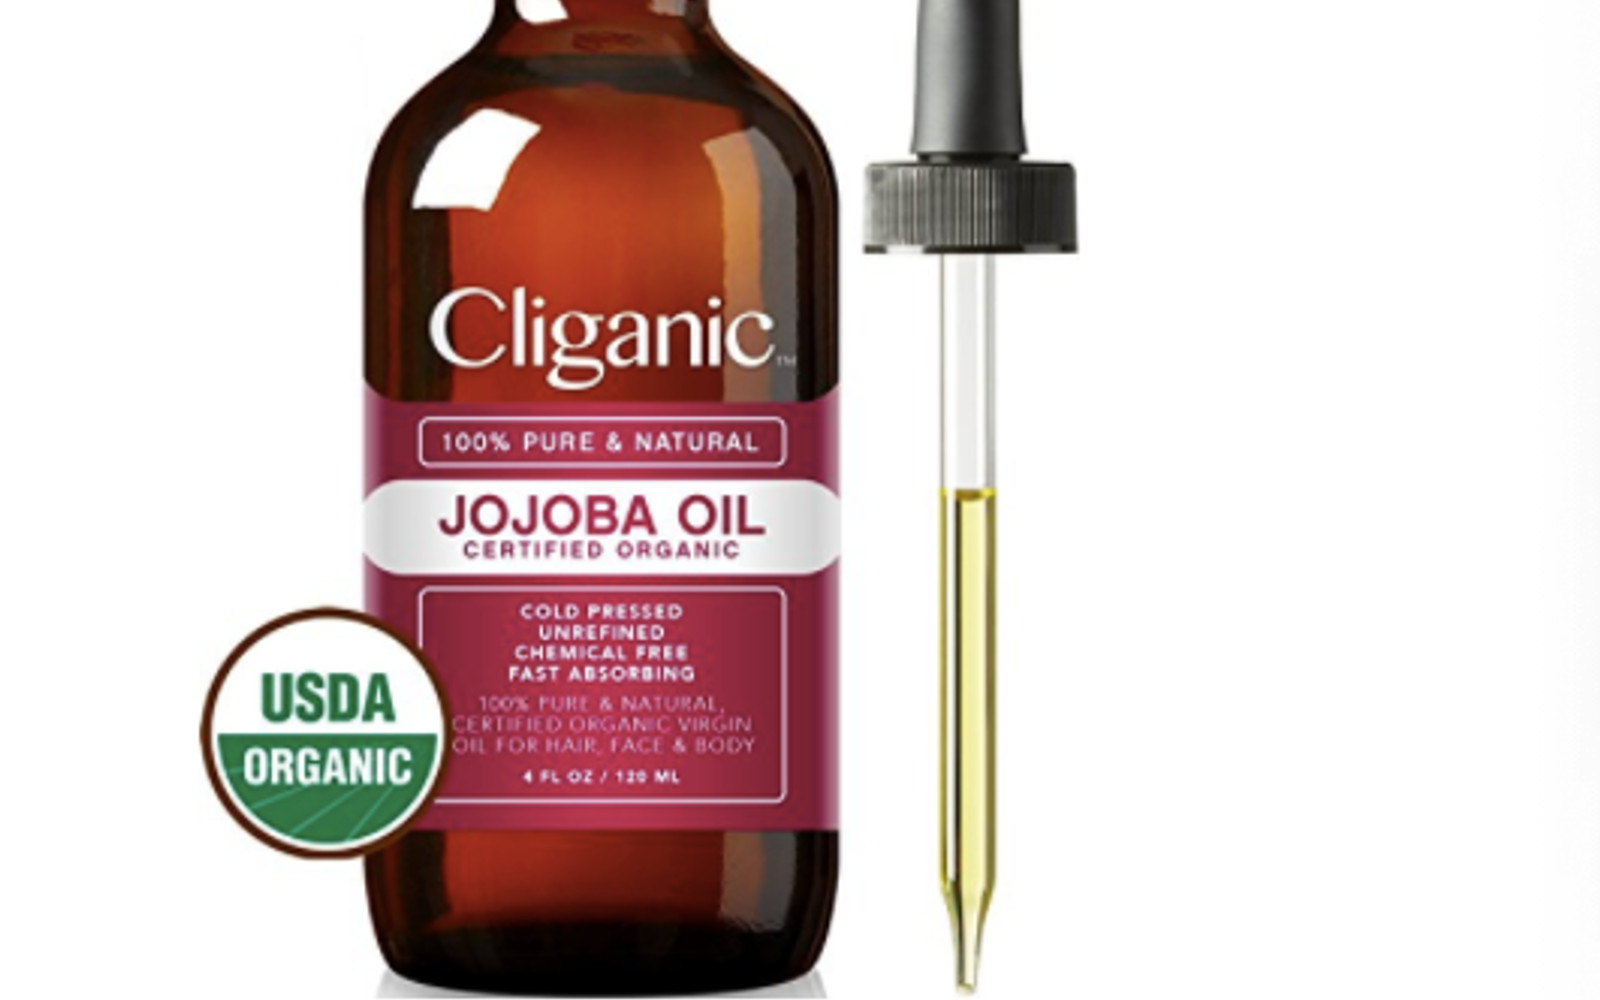 Organic Jojoba Oil, 100% Pure (4oz Large) | Natural Cold Pressed Unrefined Hexane Free Oil for Hair & Face | Carrier Oil - Certified Organic | Cliganic 90 Days Warranty